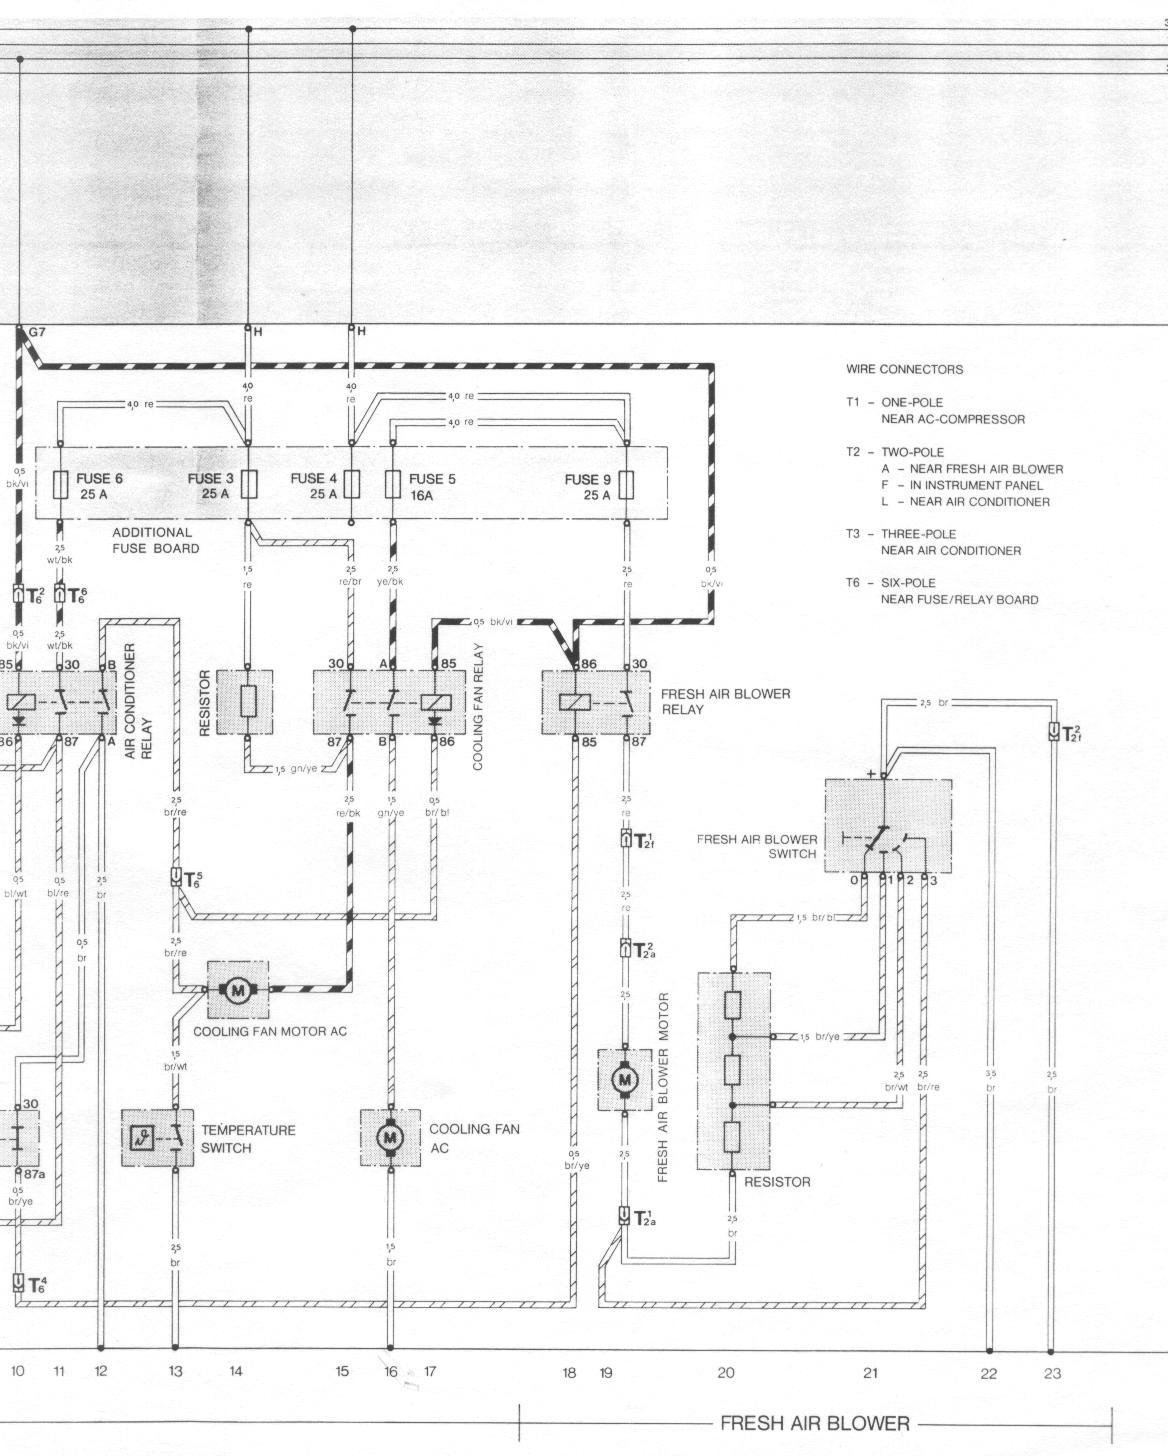 Wiring Diagram For Porsche 944